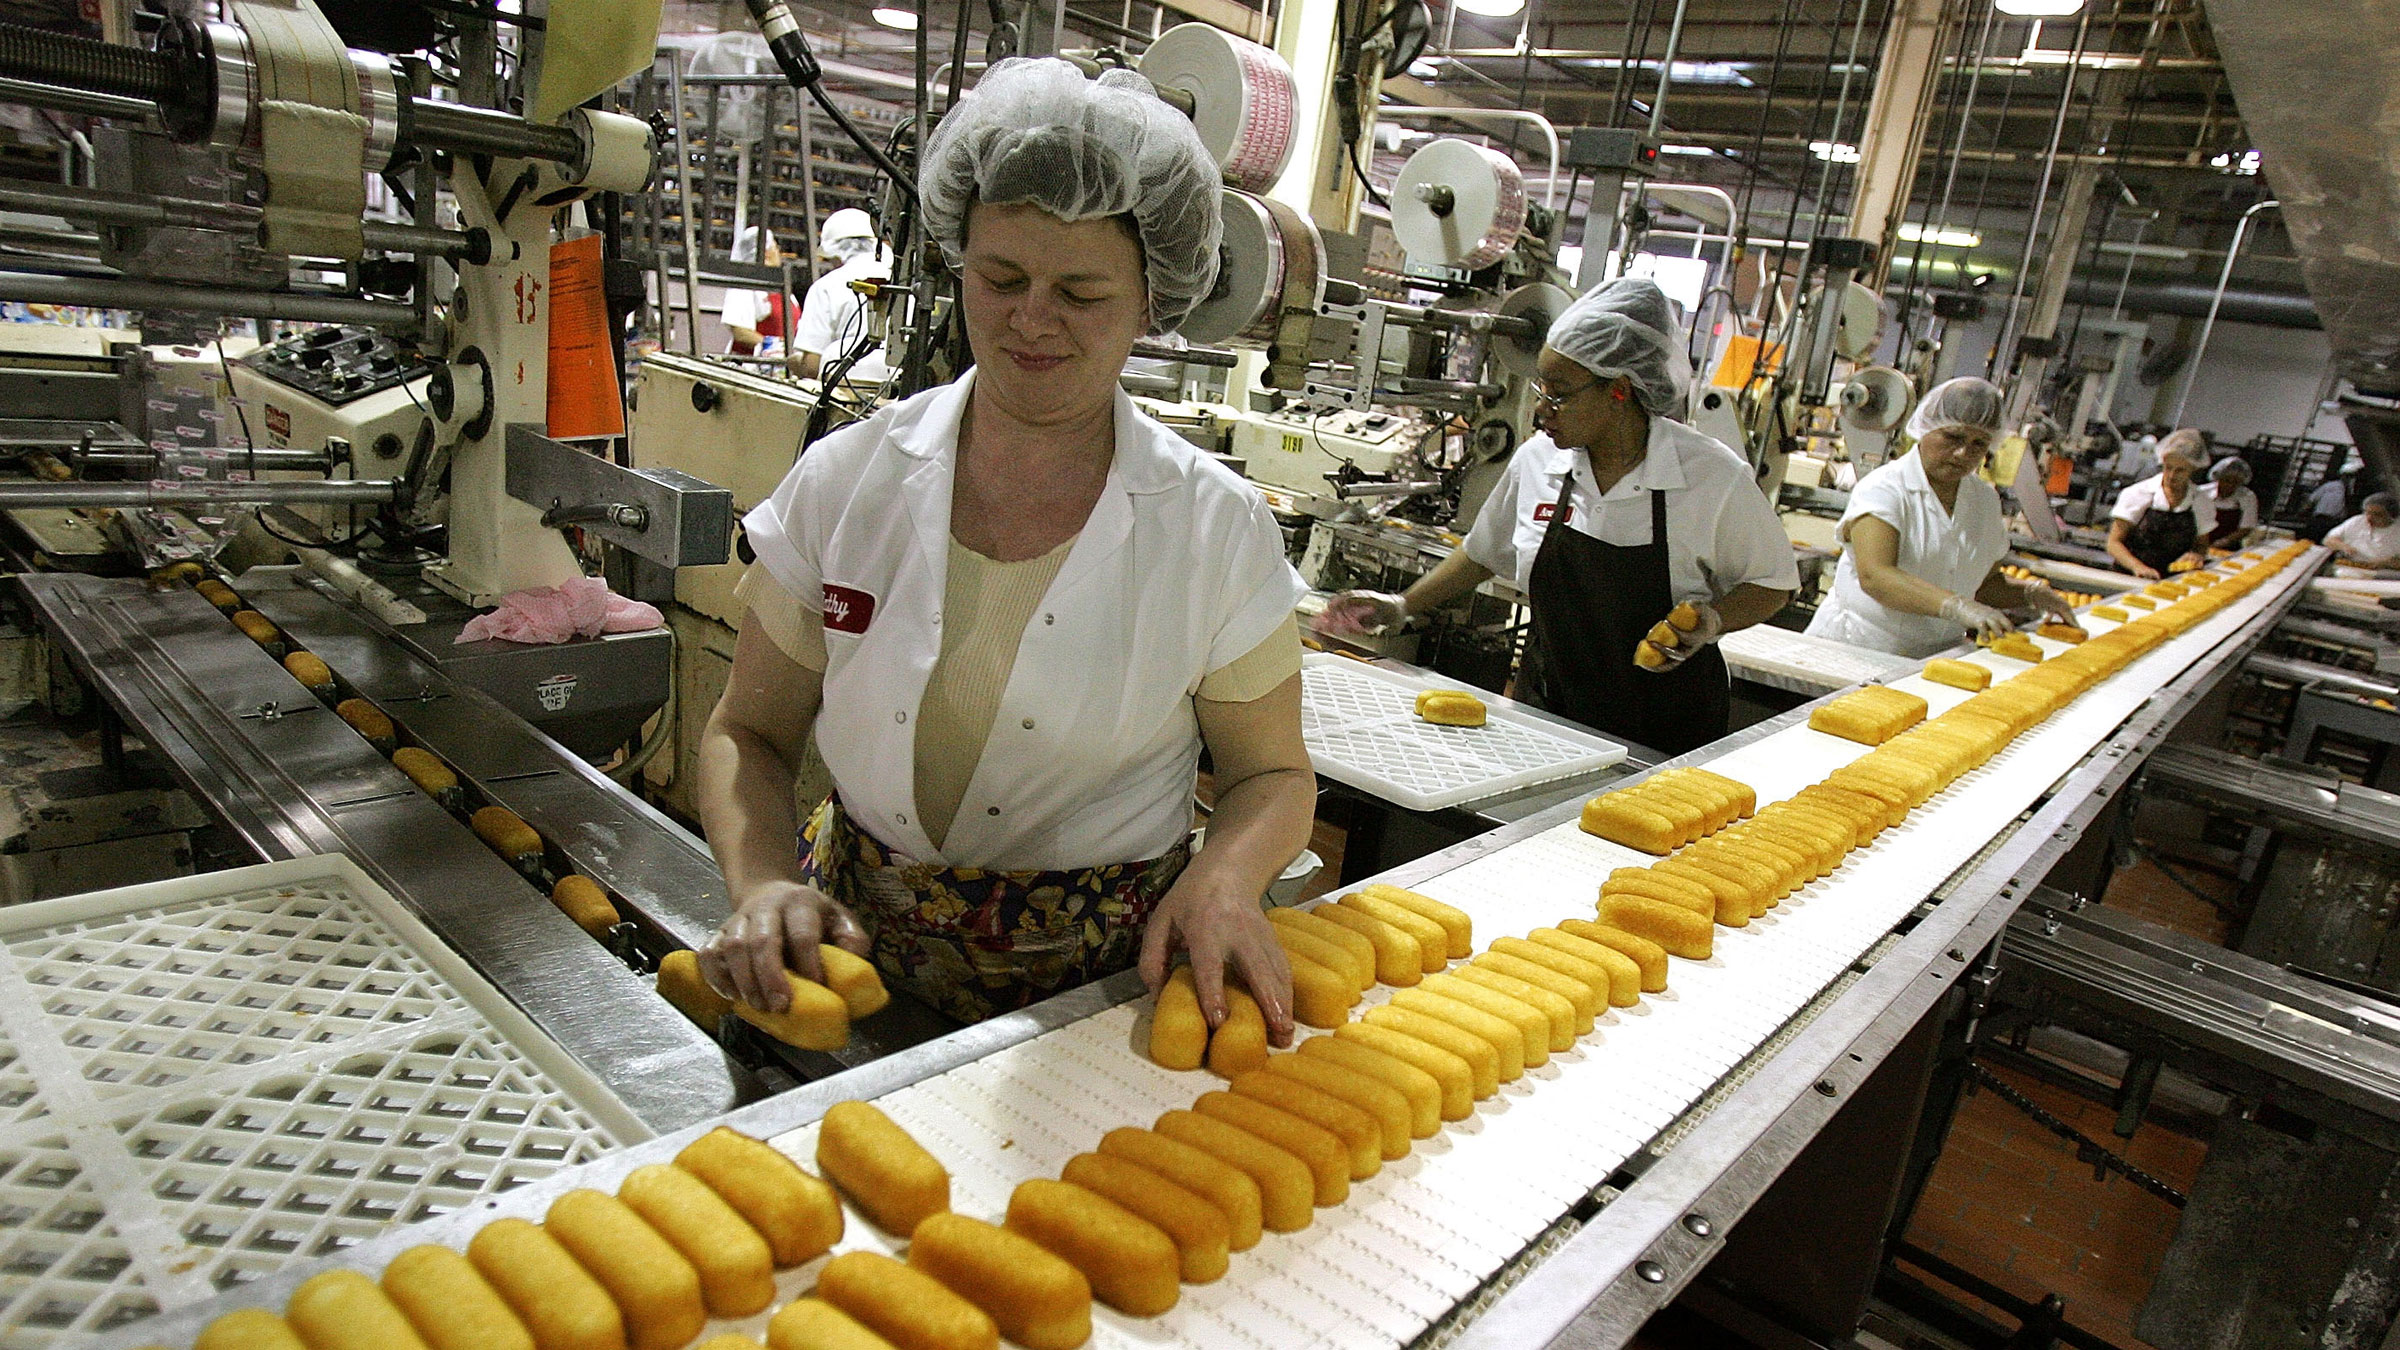 How the Twinkie is made